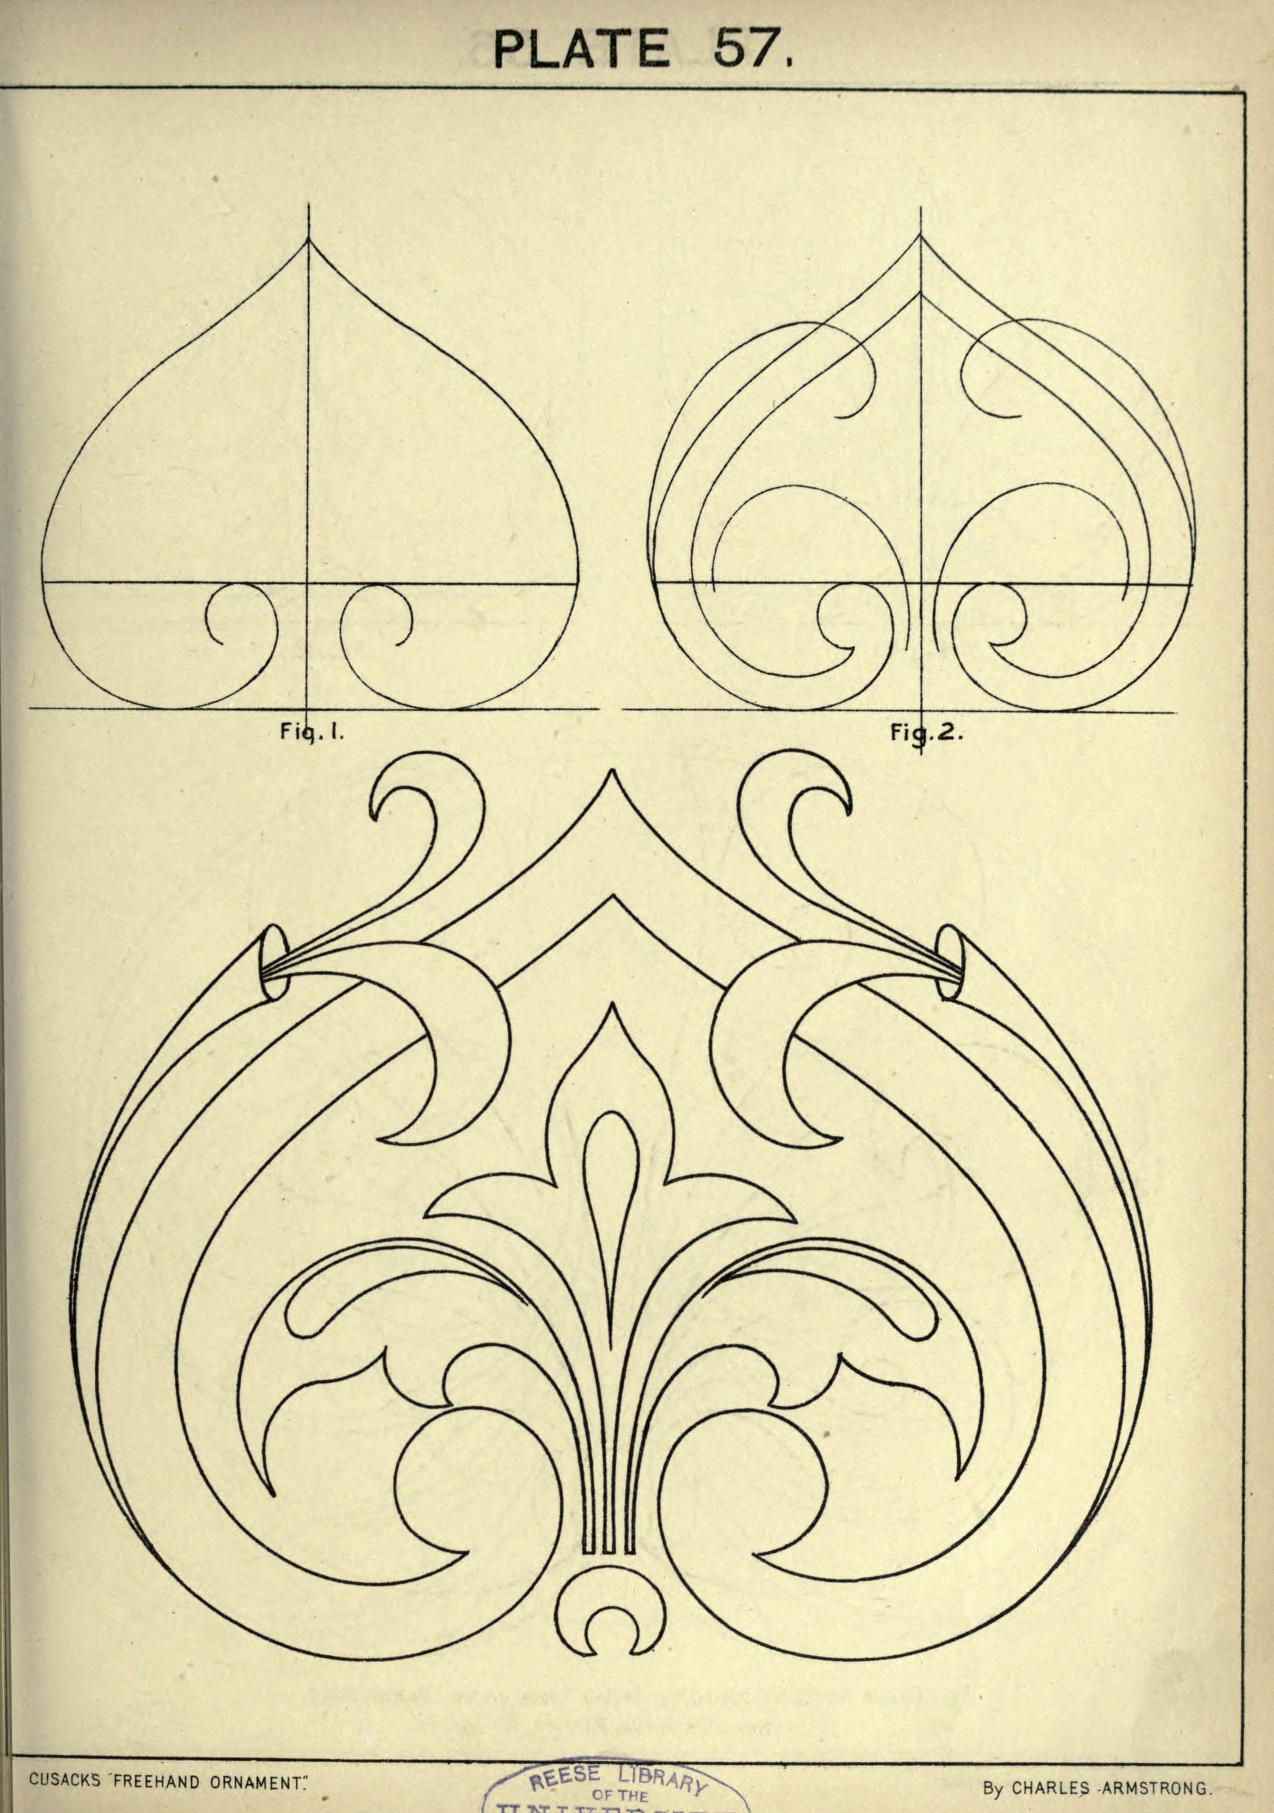 1274x1813 Cusack's Freehand Ornament. A Text Book With Ch Window For Me